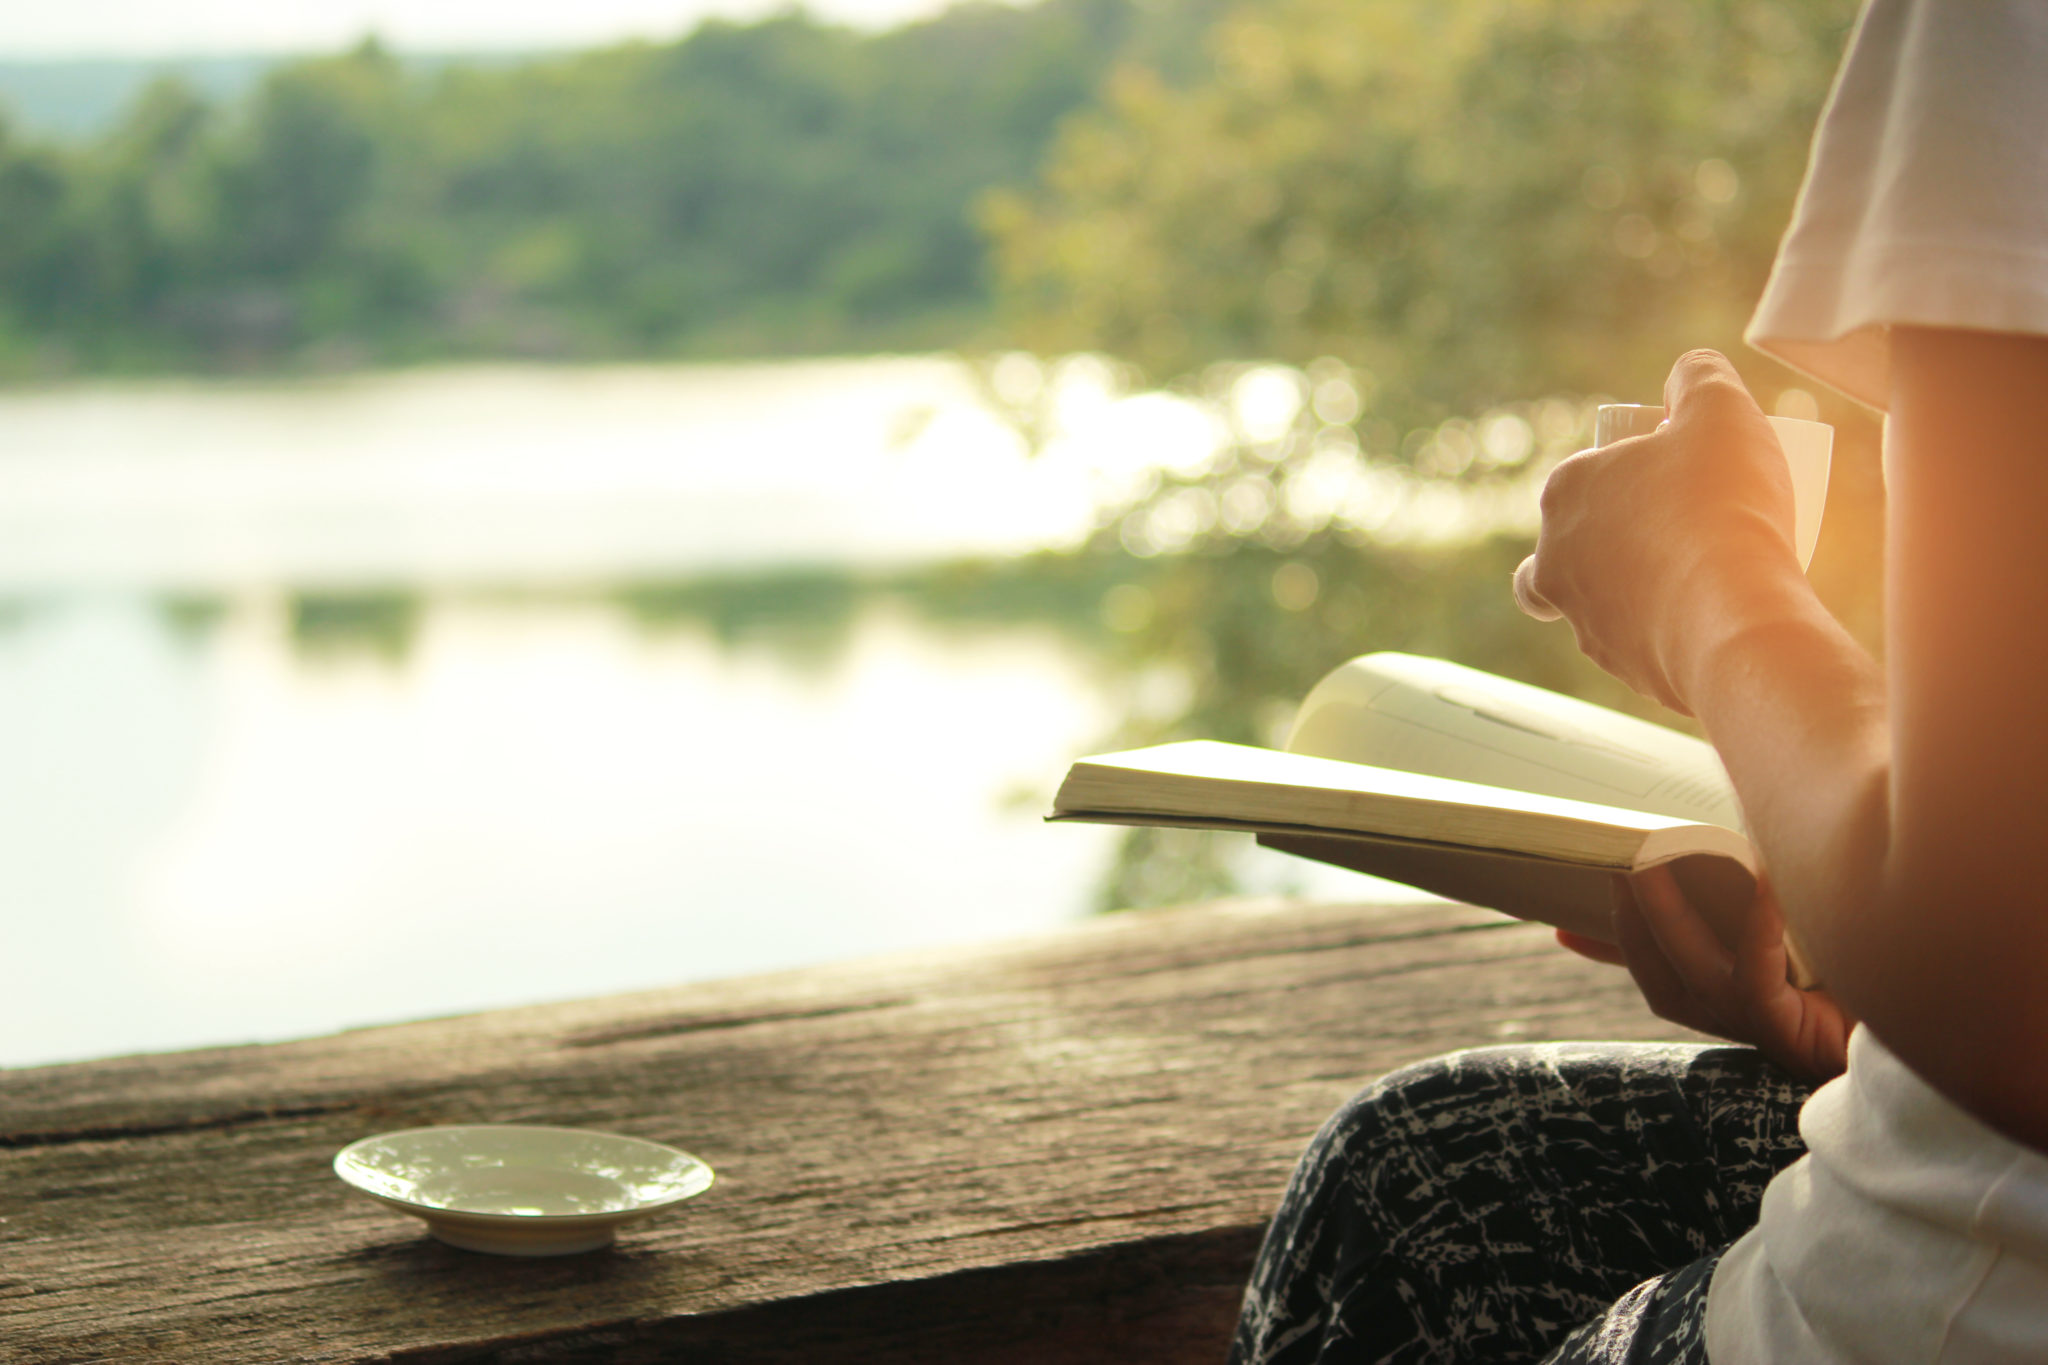 Reasons to read more - Reading increases empathy, studies show